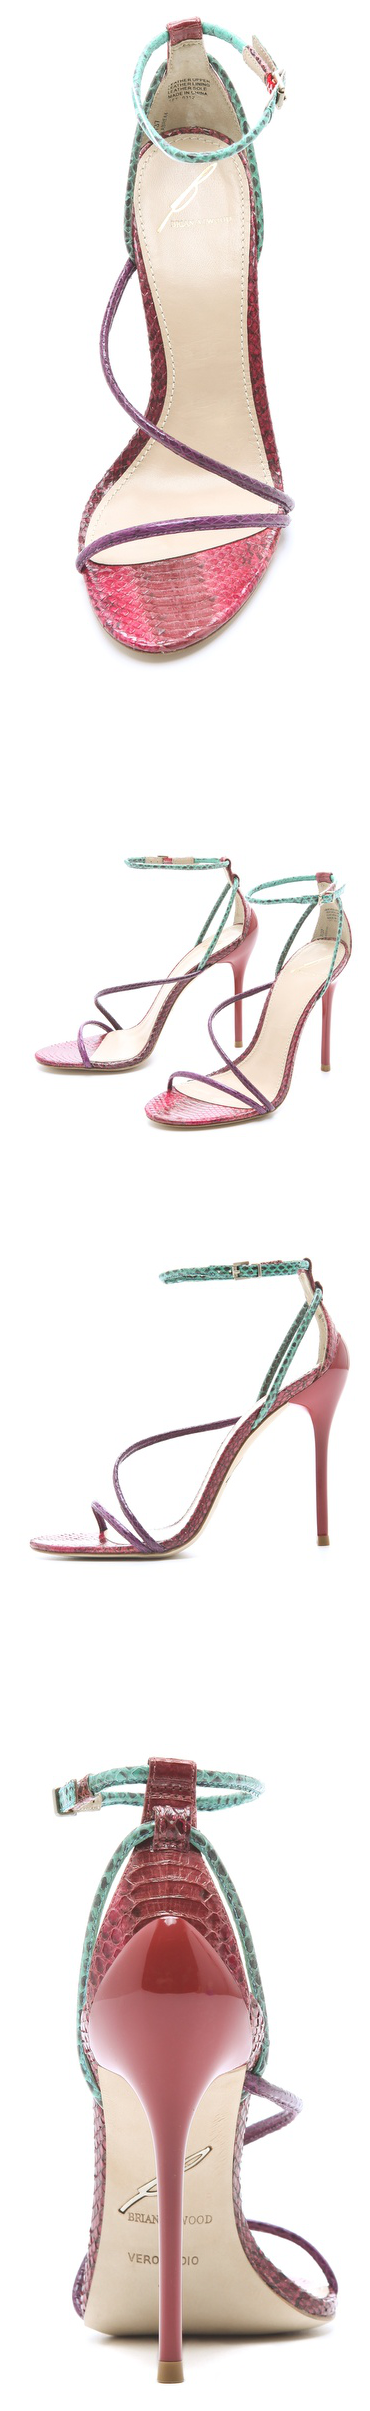 SS12 B Brian Atwood 'Labrea' High Heel Sandals... see the entire article @ ow.ly/aJel7 via jacmove.com